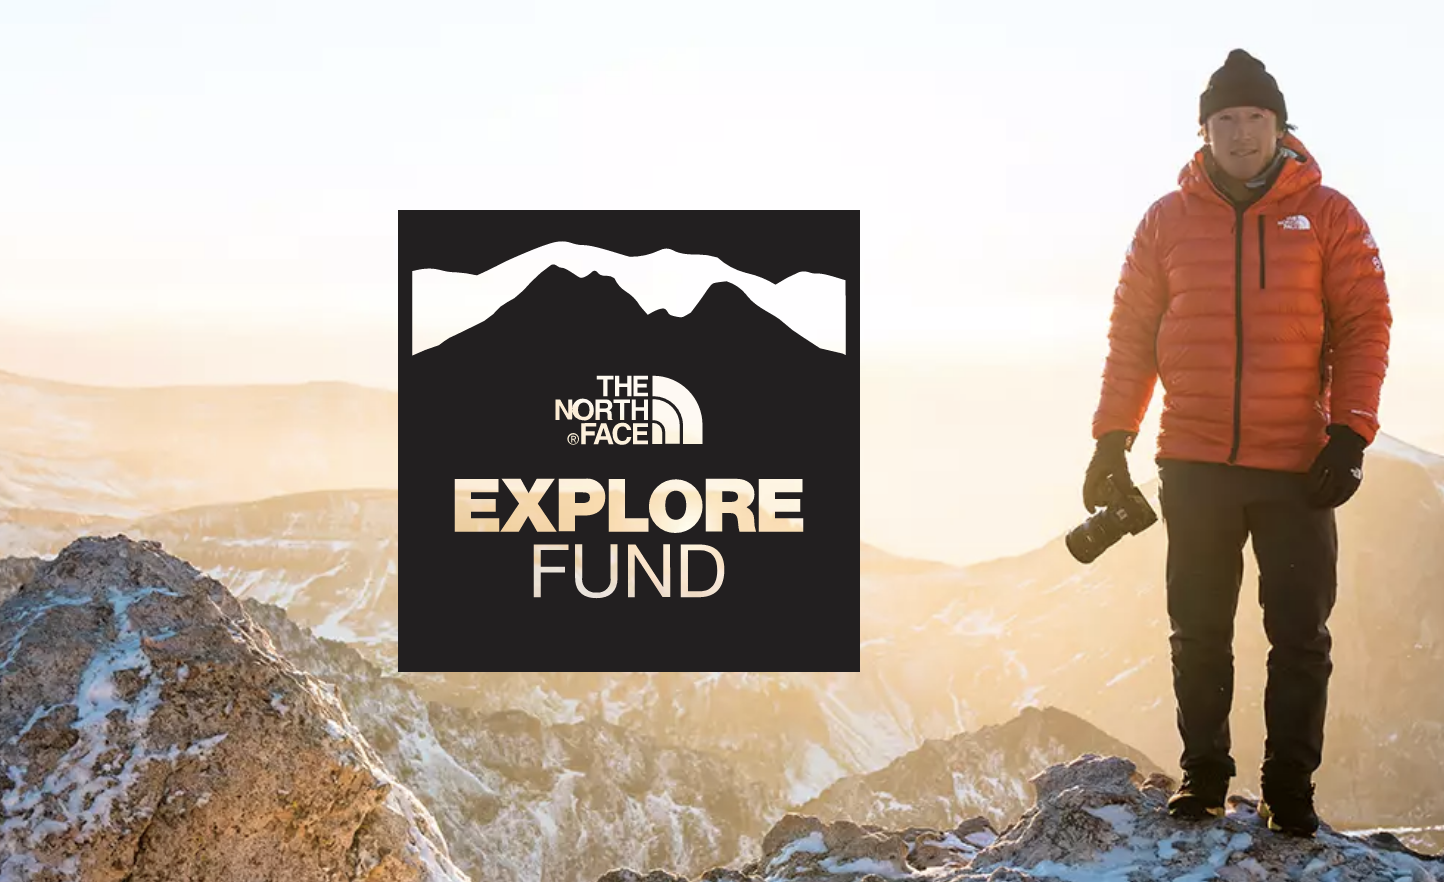 the north face explore fund logo with Jimmy Chin